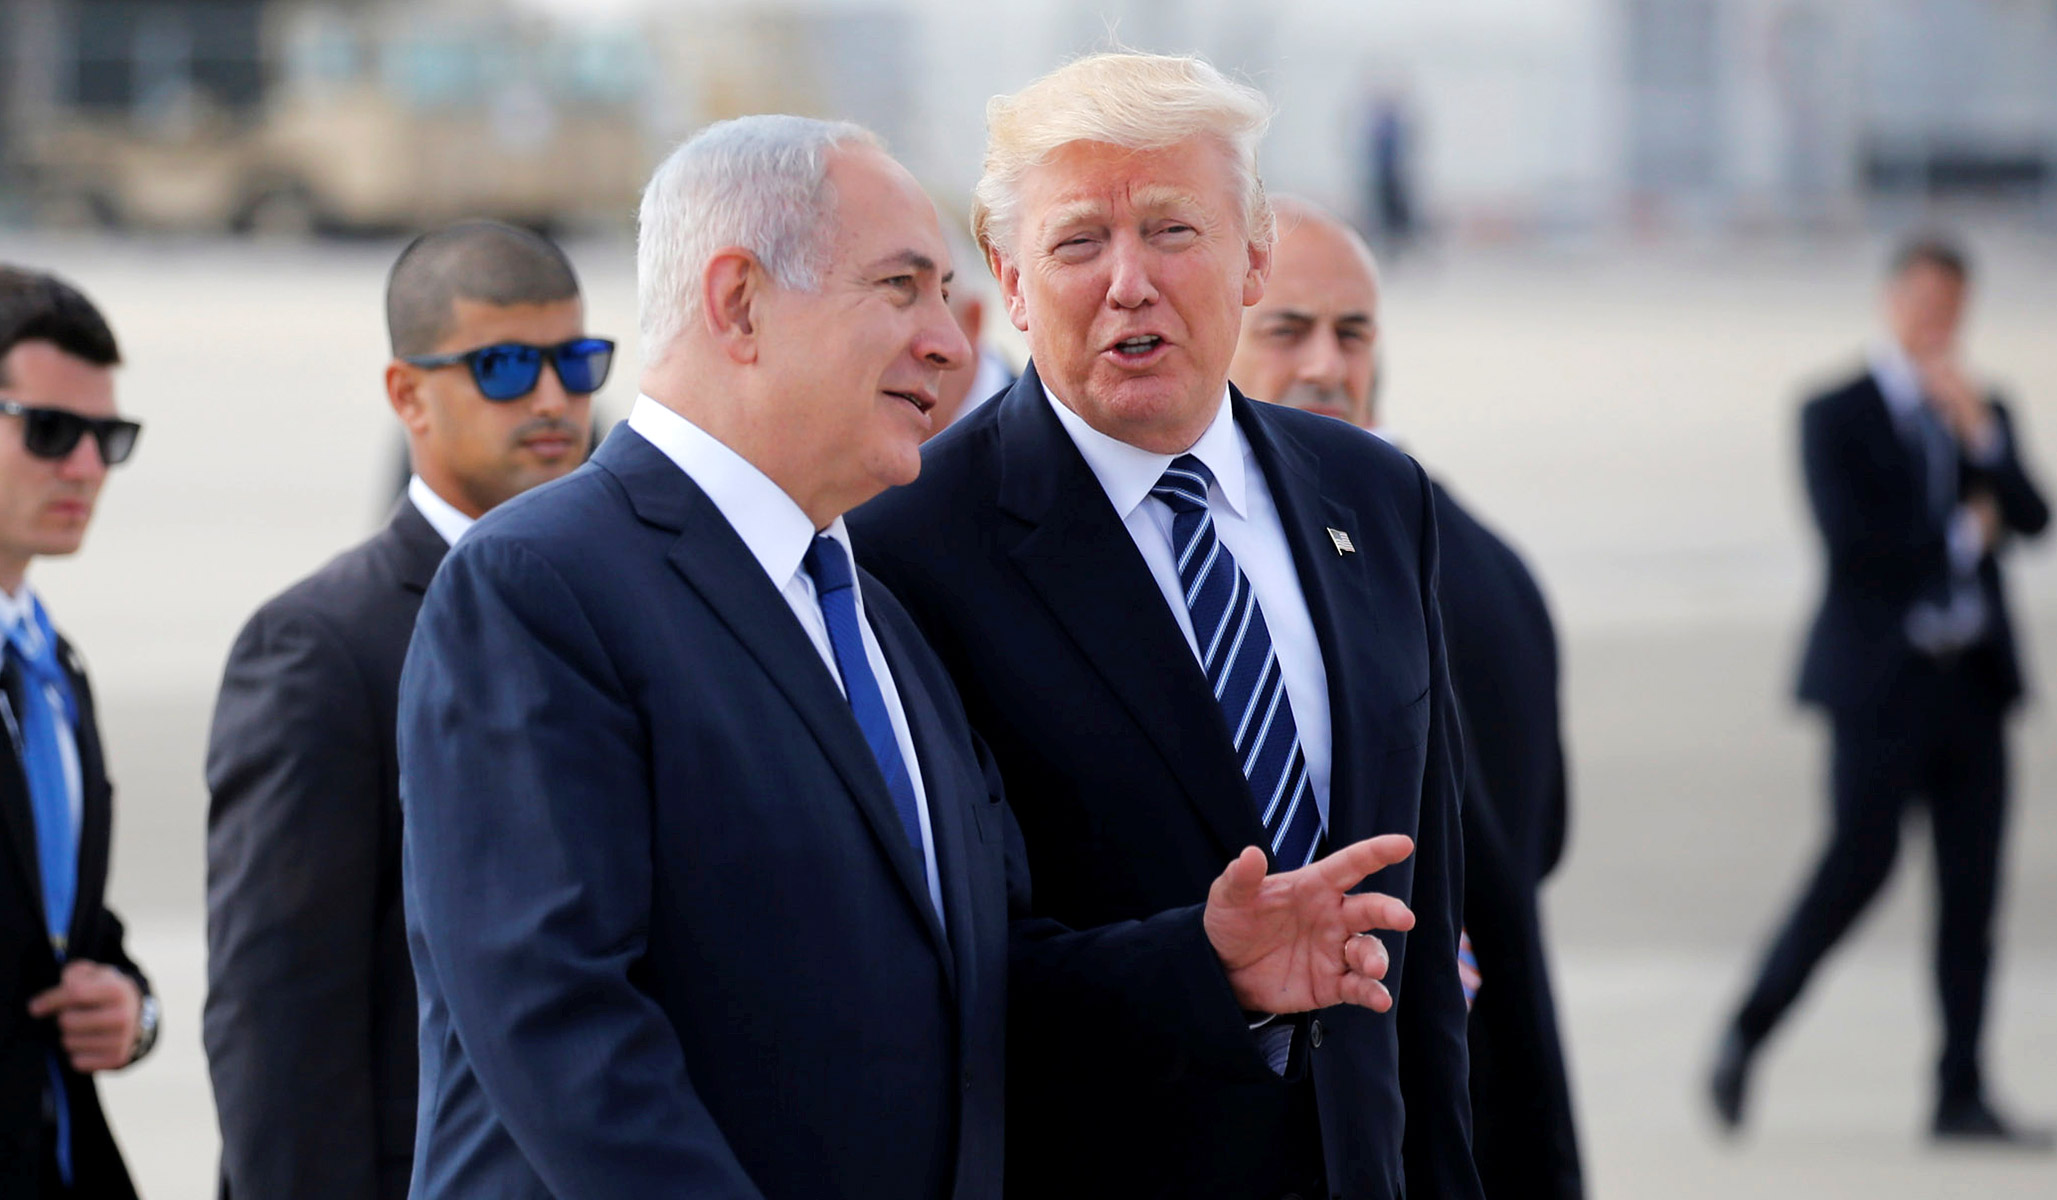 Trump Accelerates the Dangerous Politicization of Israel